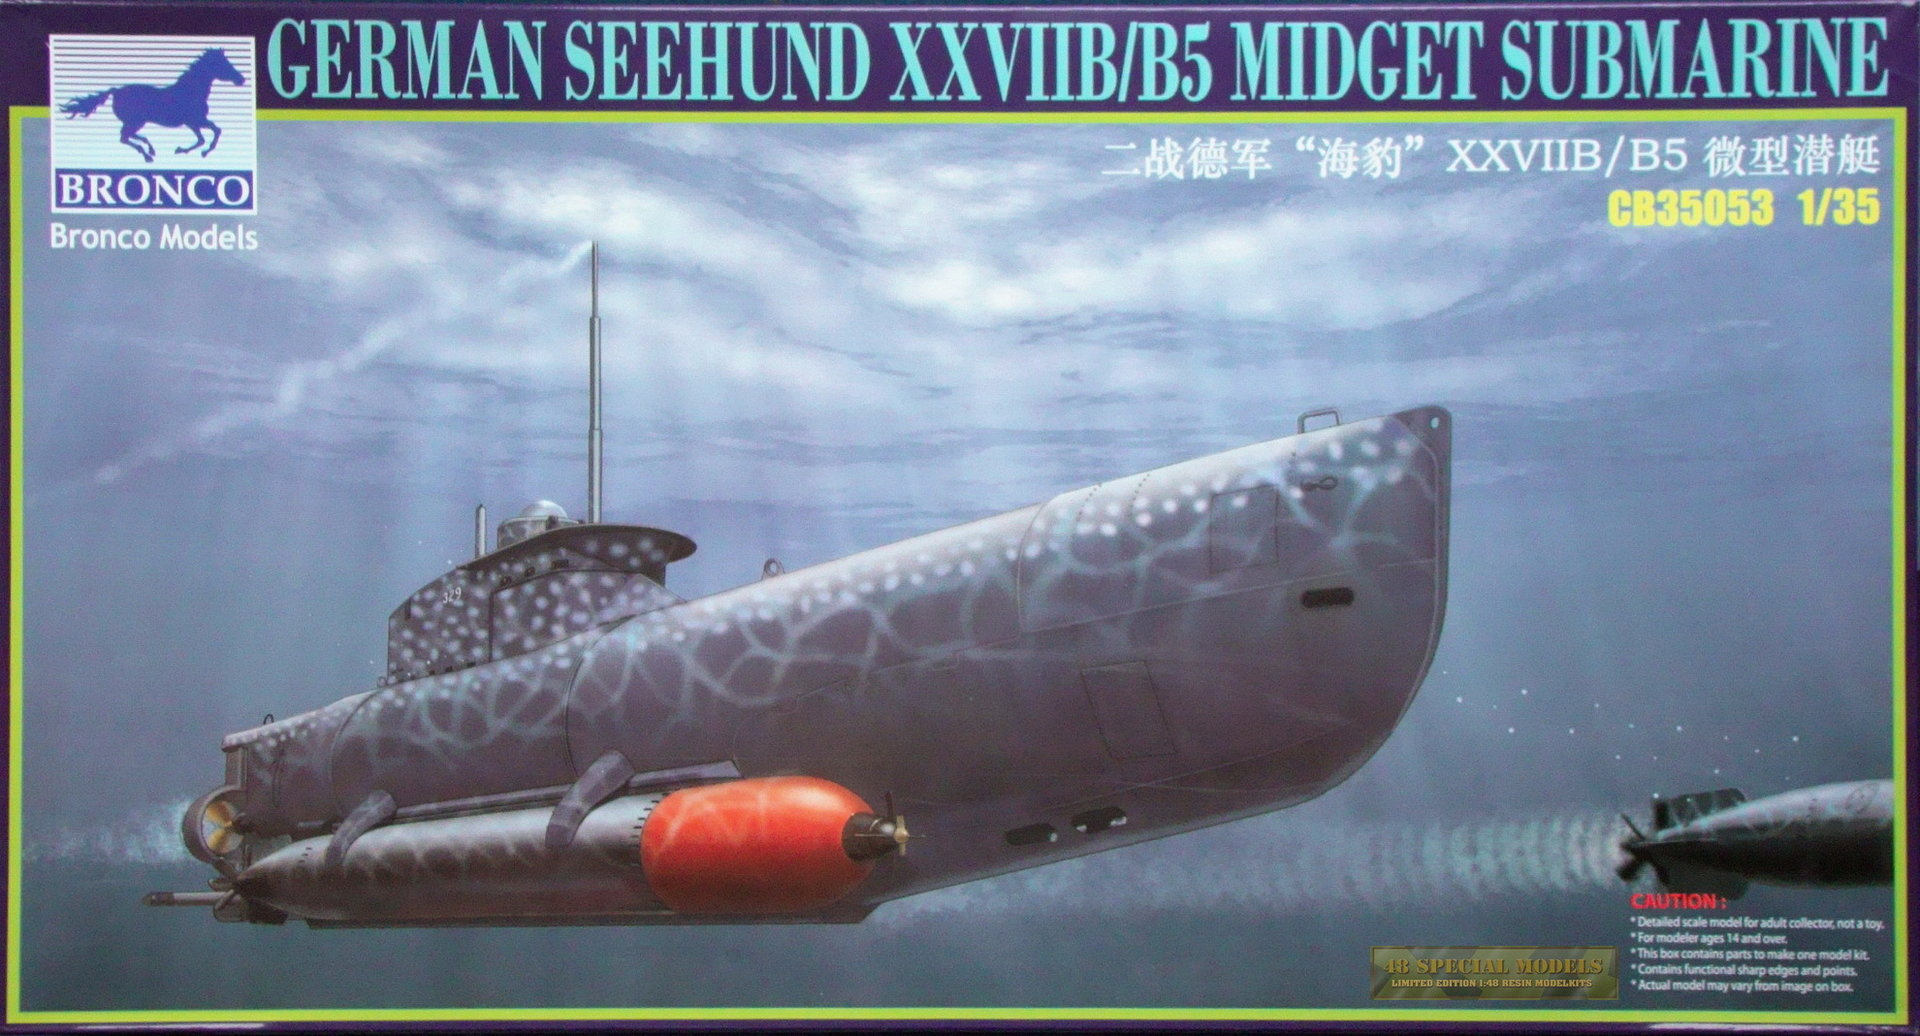 German Seehund XXV B/B5 Midget Submarine, 1/35 Kit